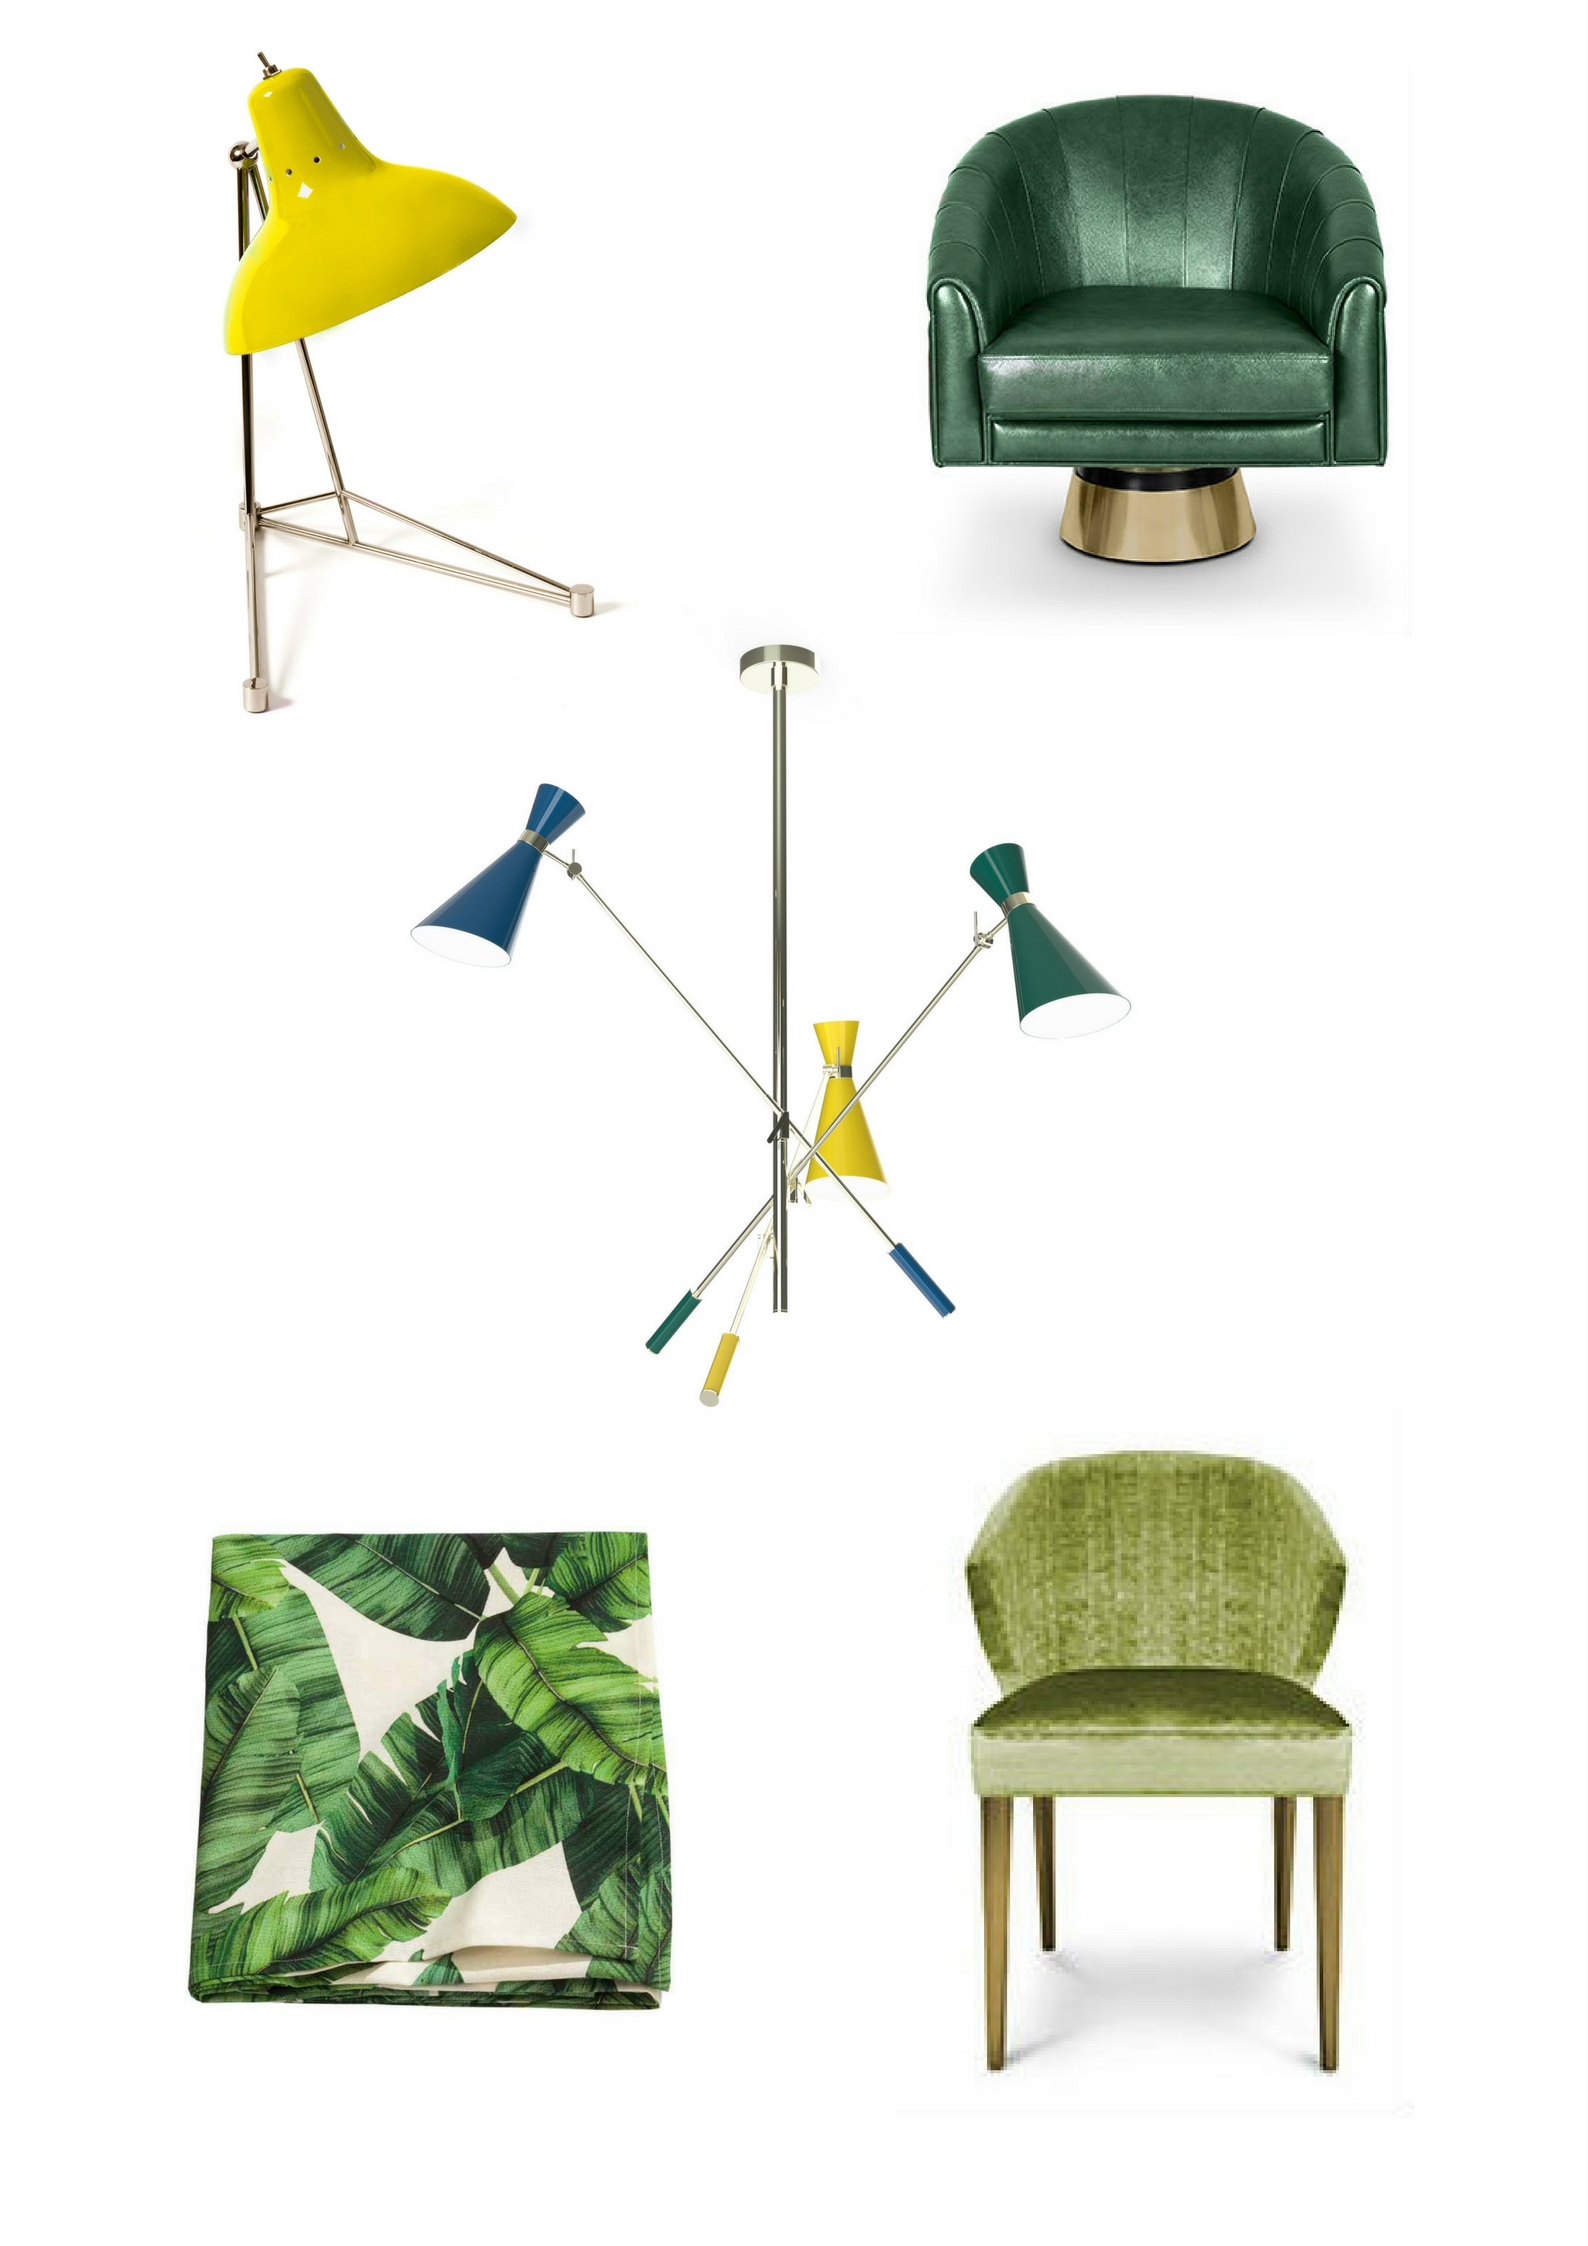 Mood Board Why You Should Use Greenery This Summer 7 greenery Mood Board: Why You Should Use Greenery This Summer Mood Board Greenery